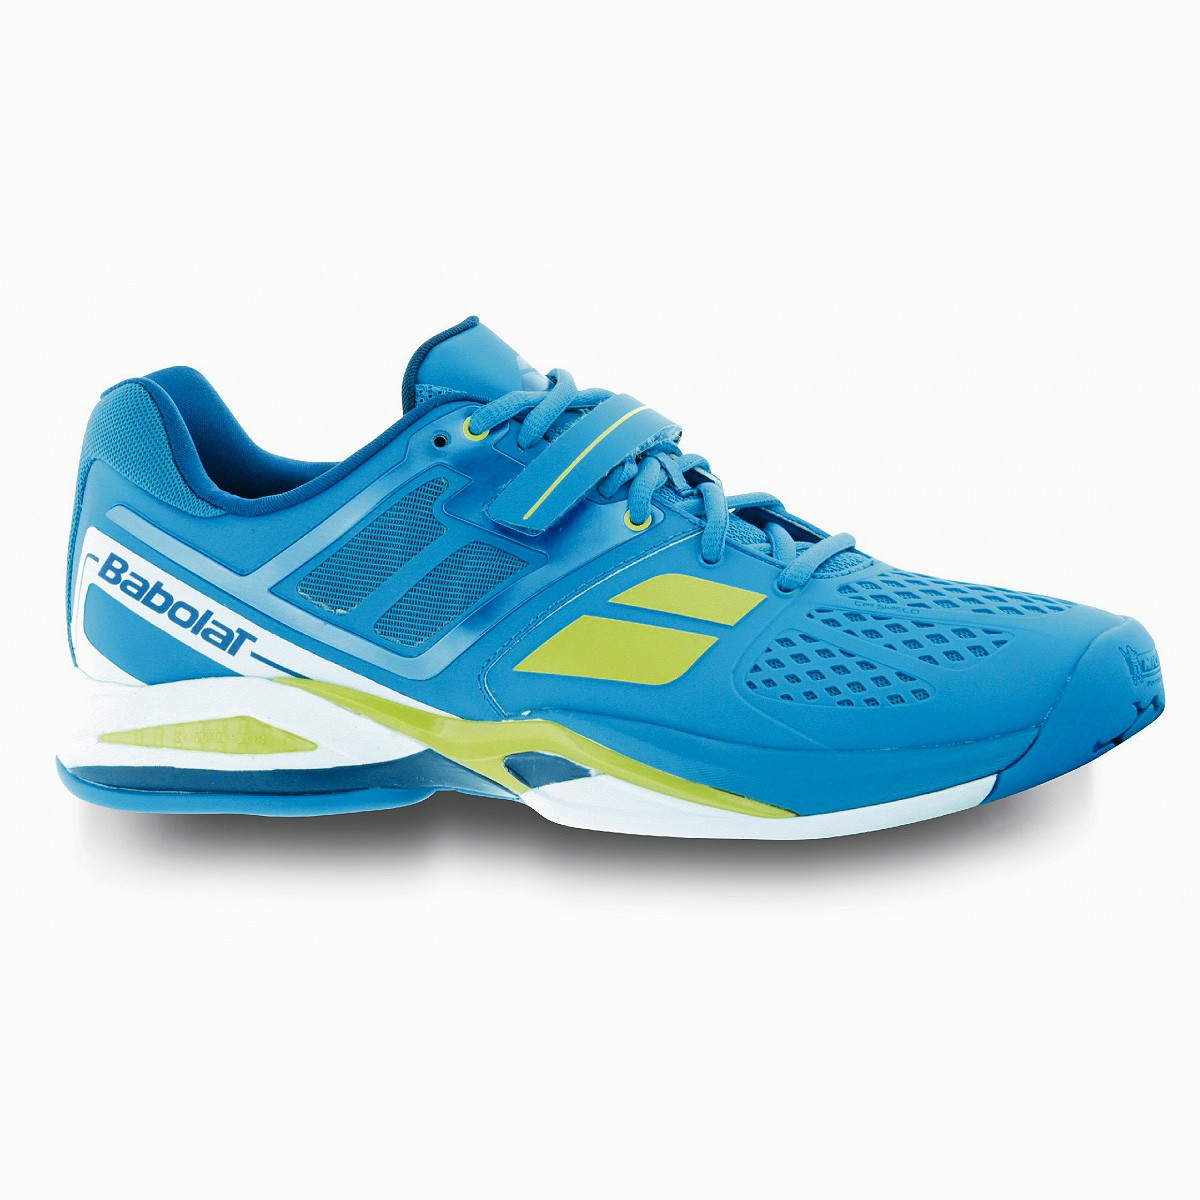 Buty tenisowe Babolat Propulse BPM All Court Blue